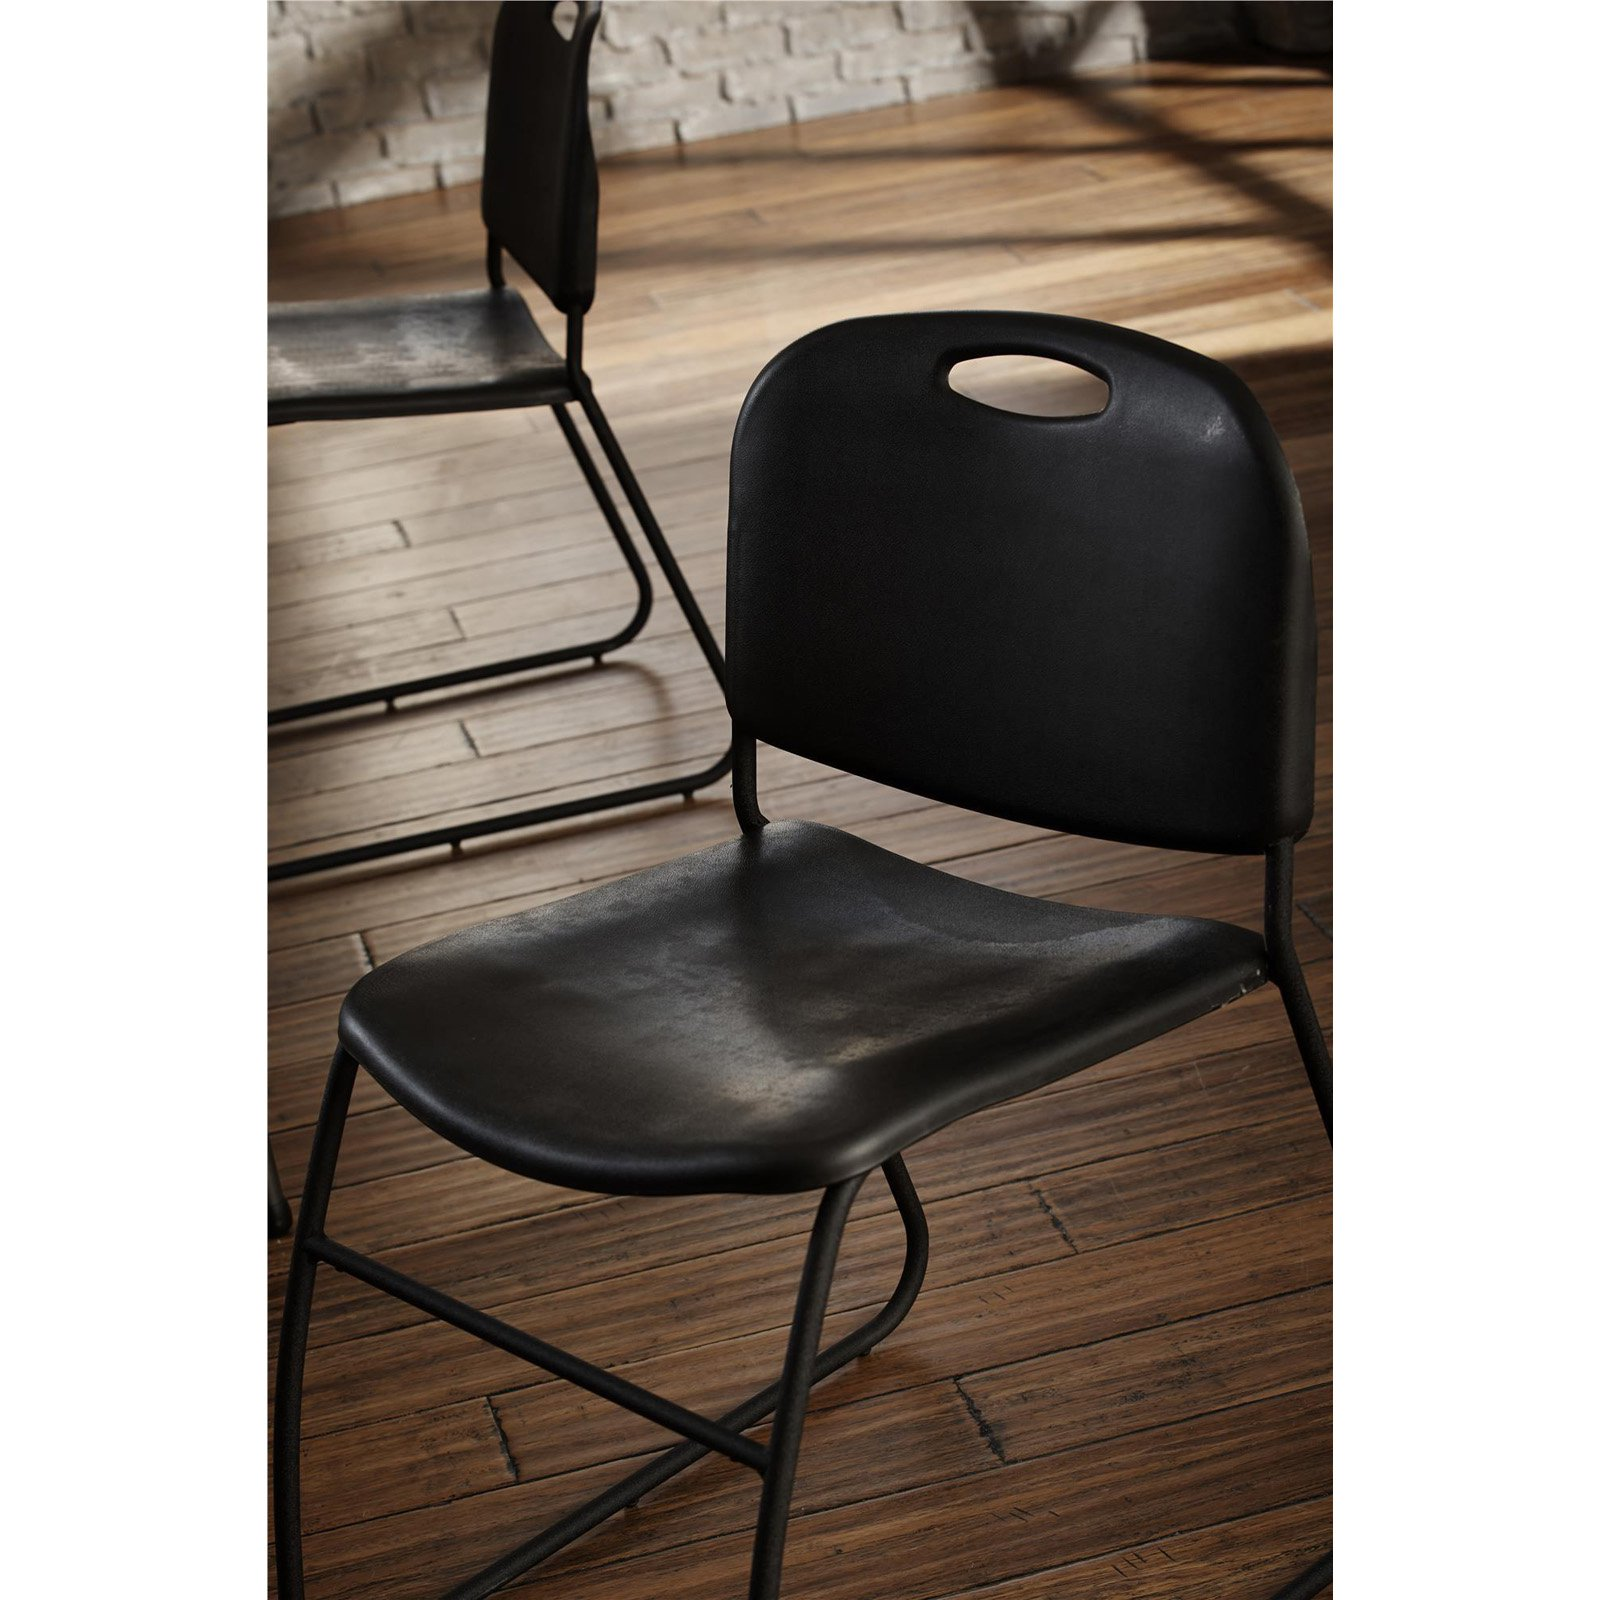 COSCO Commercial Contoured Back Resin Stacking Chair, Black, 4 Pack